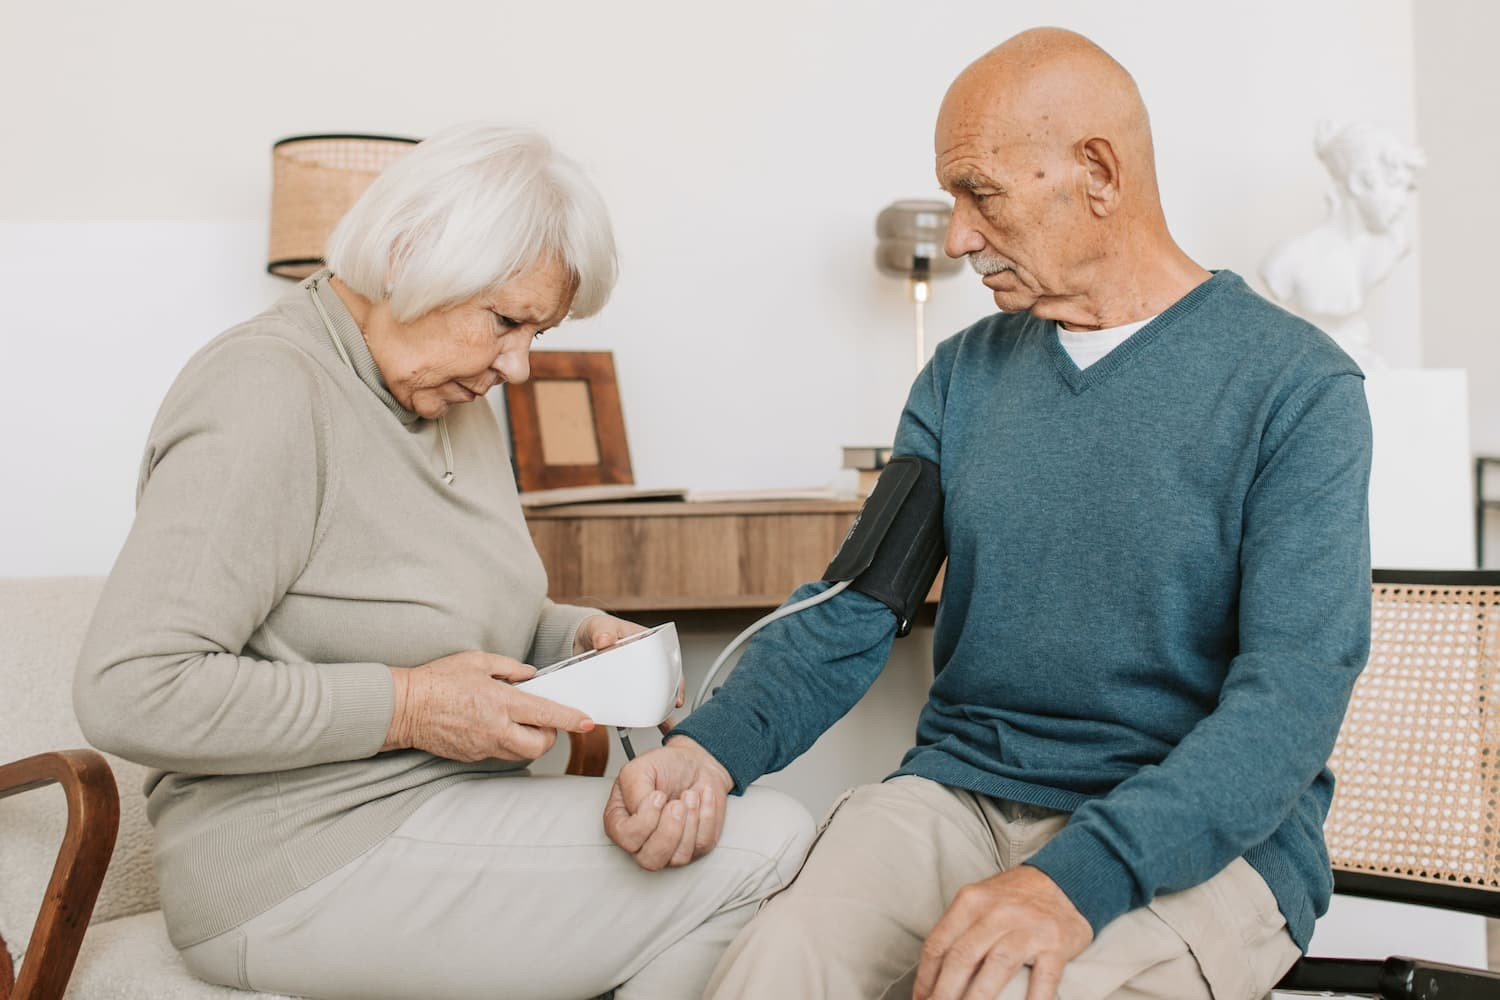 National Carers Week 2021: Recognizing Carers' Contributions